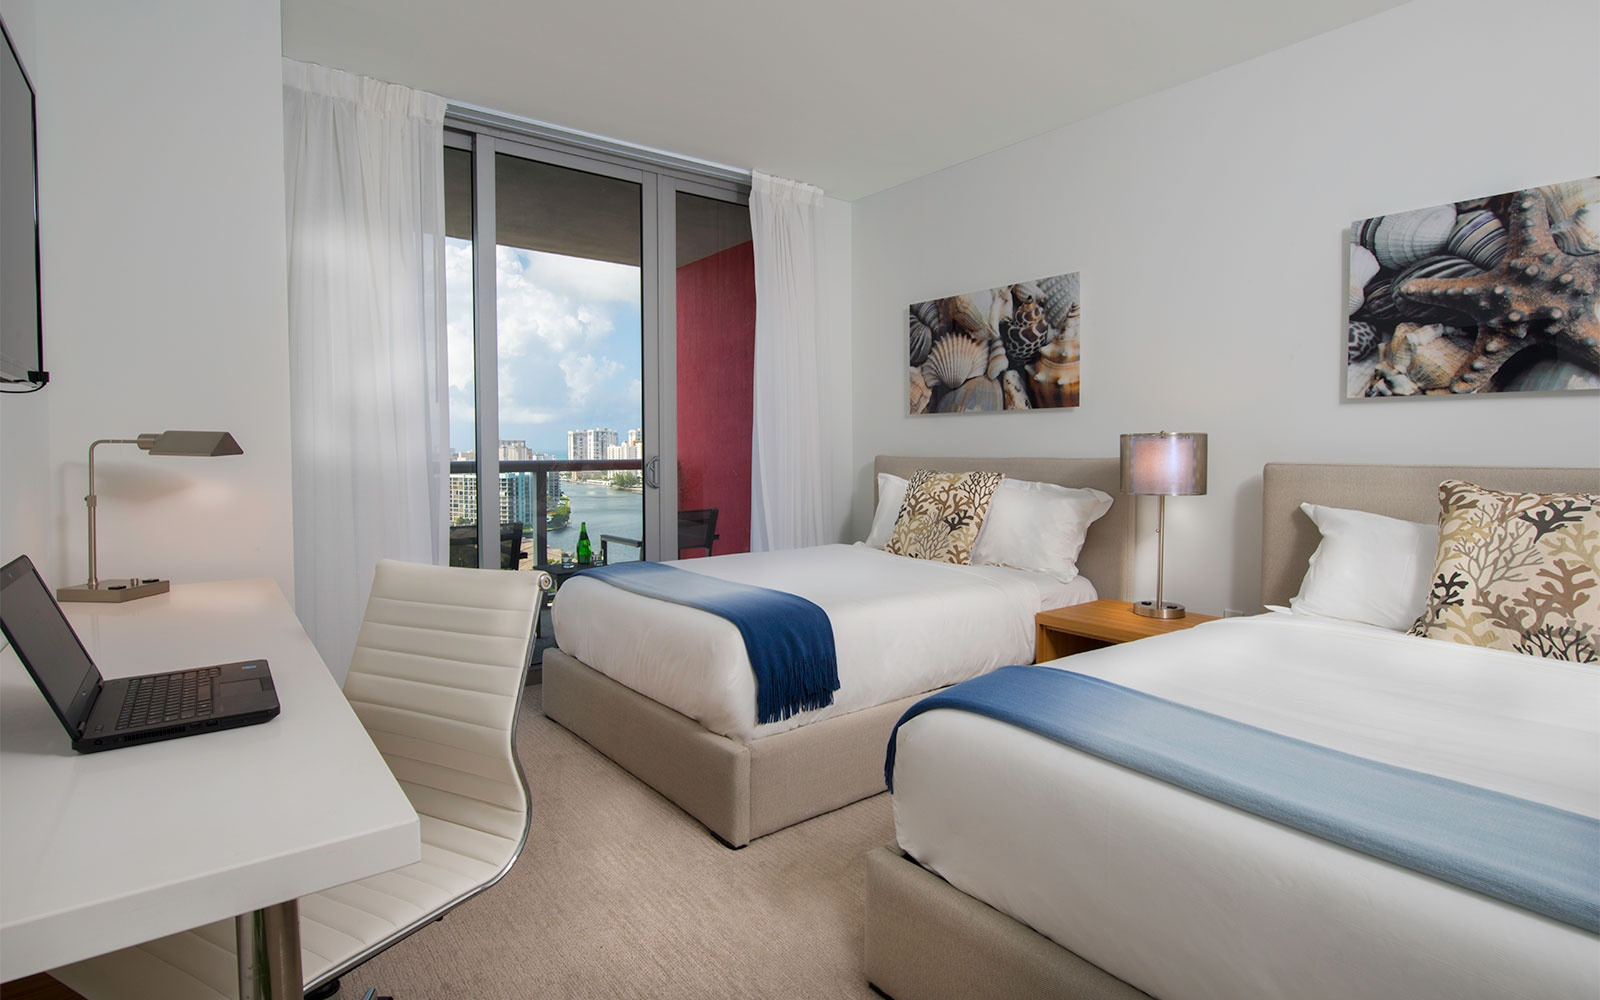 Beachwalk Resort and HYDE Resort, Hallandale Beach, Florida